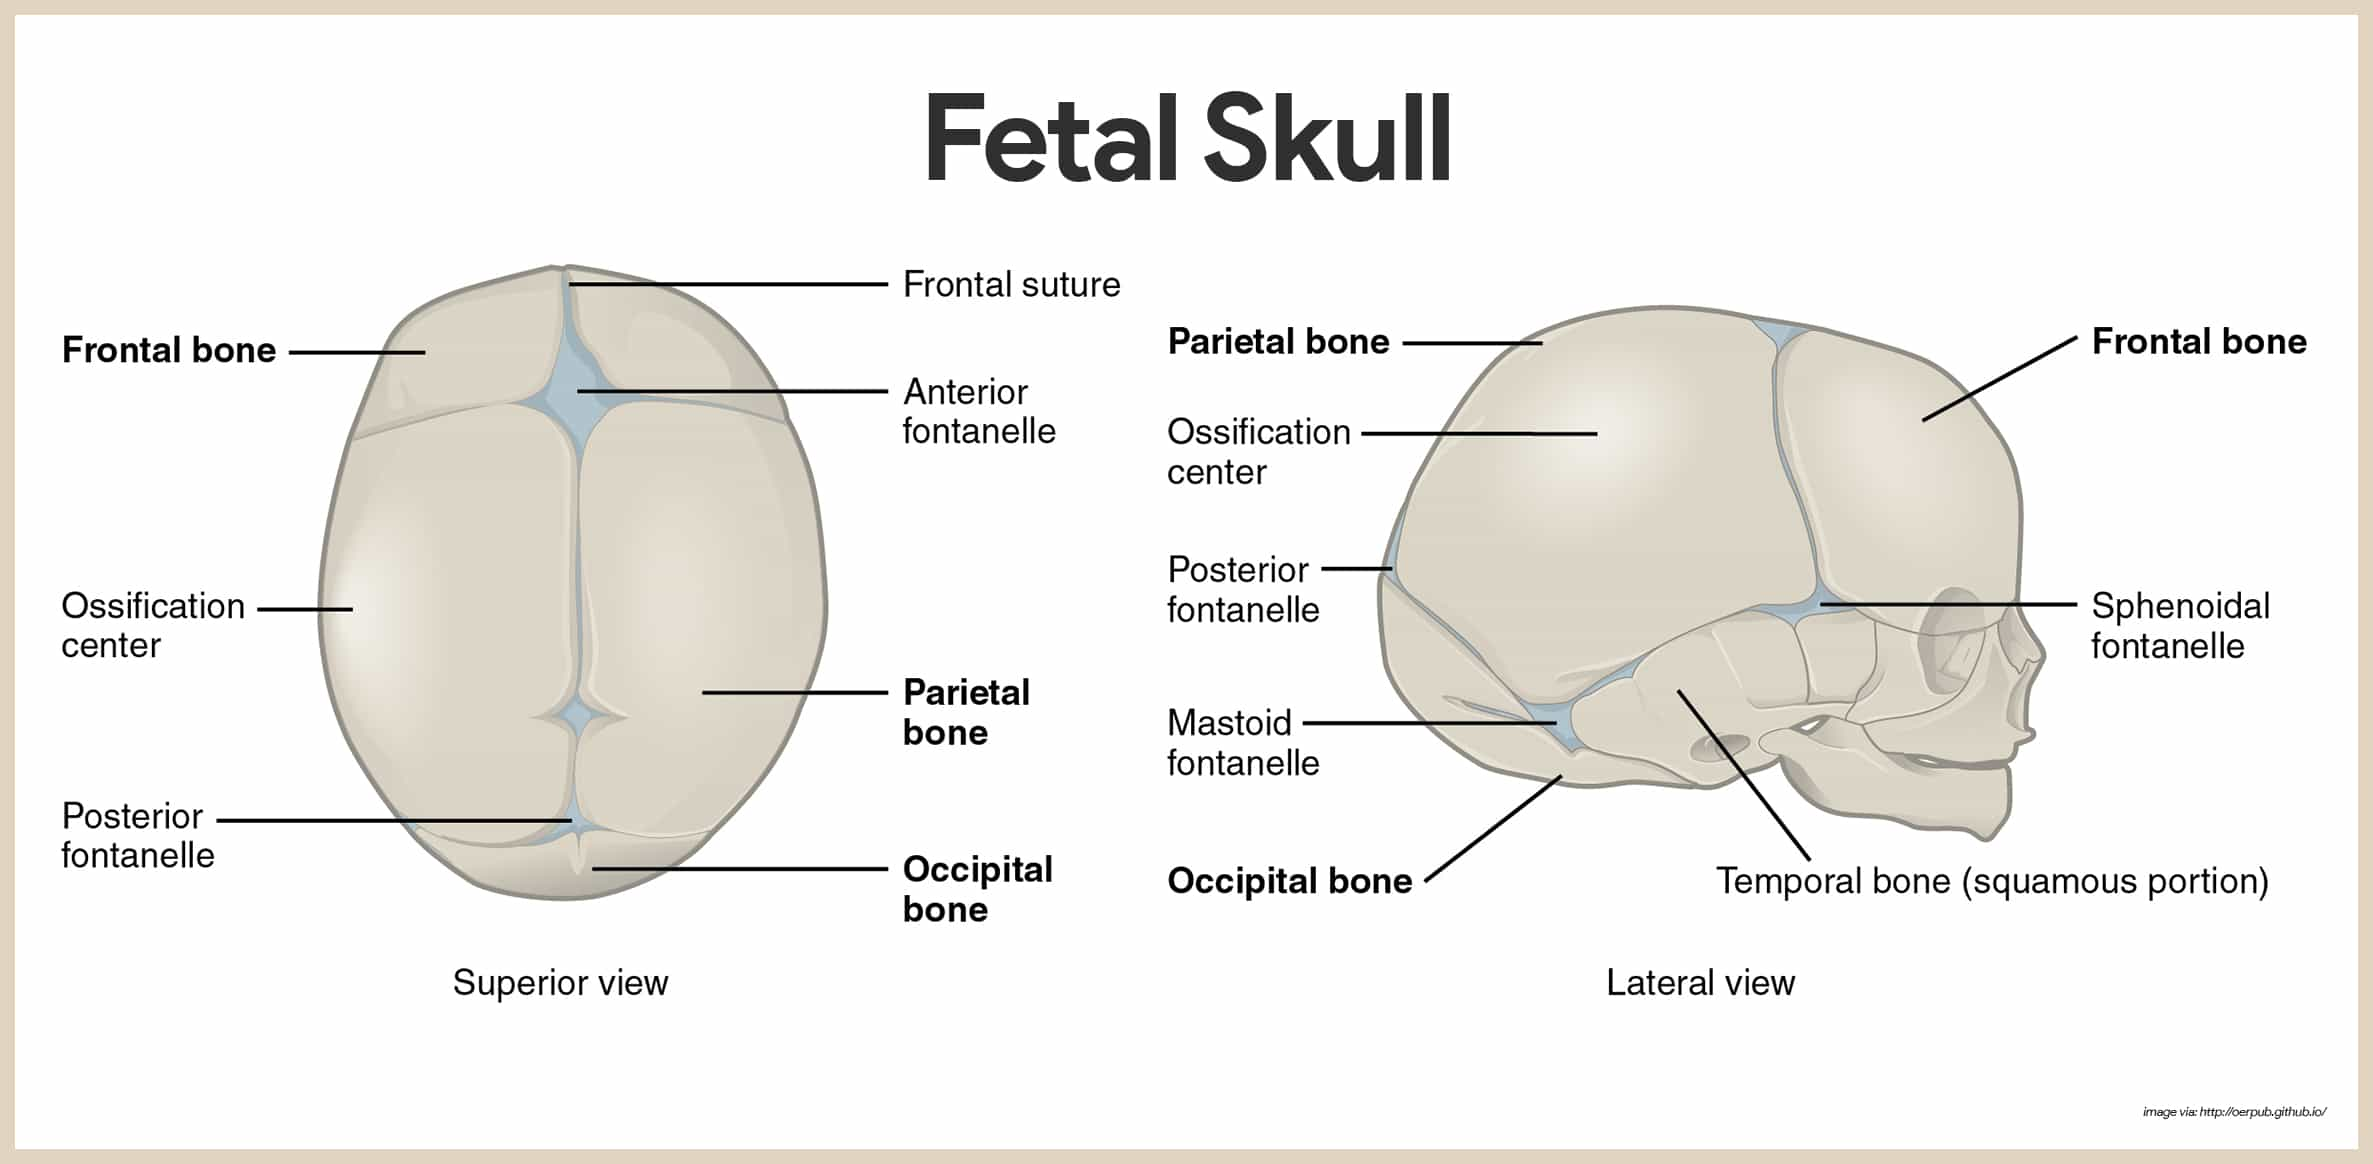 Fetal Skull-Skeletal System Anatomy and Physiology for Nurses